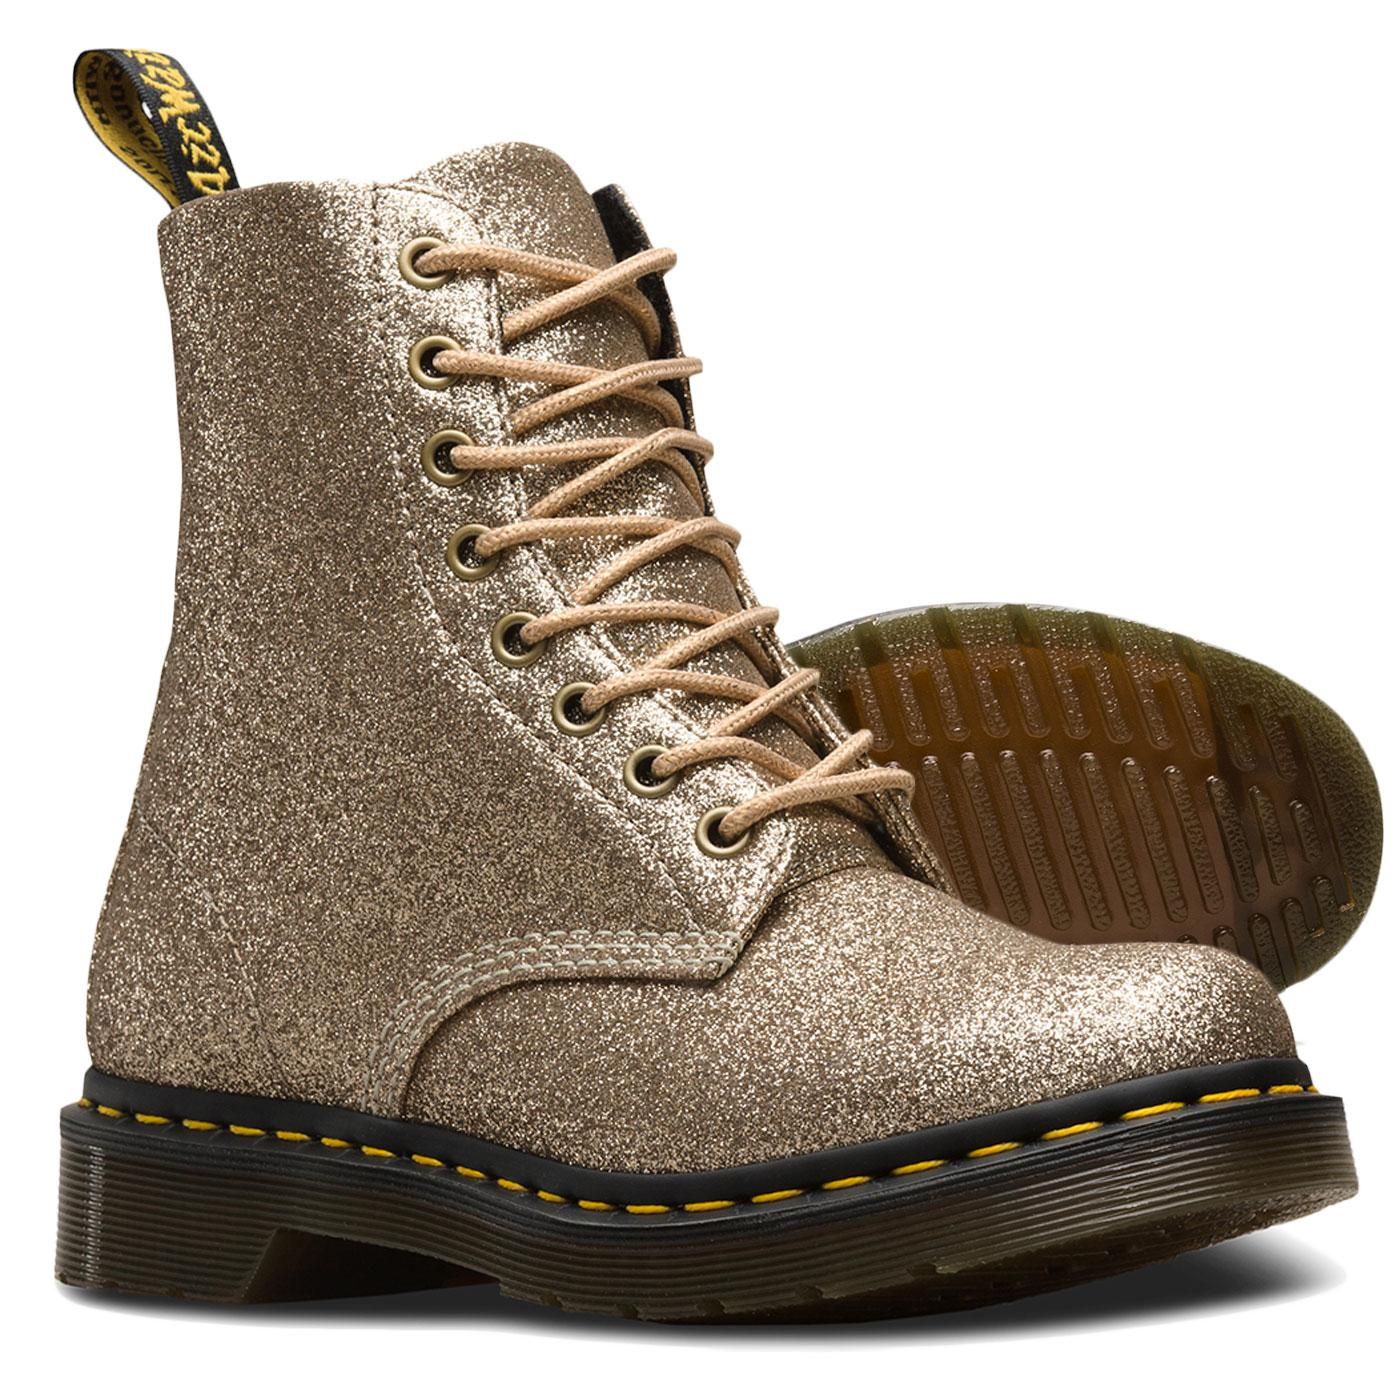 DR MARTENS Pascal 1460 Boots in Vintage